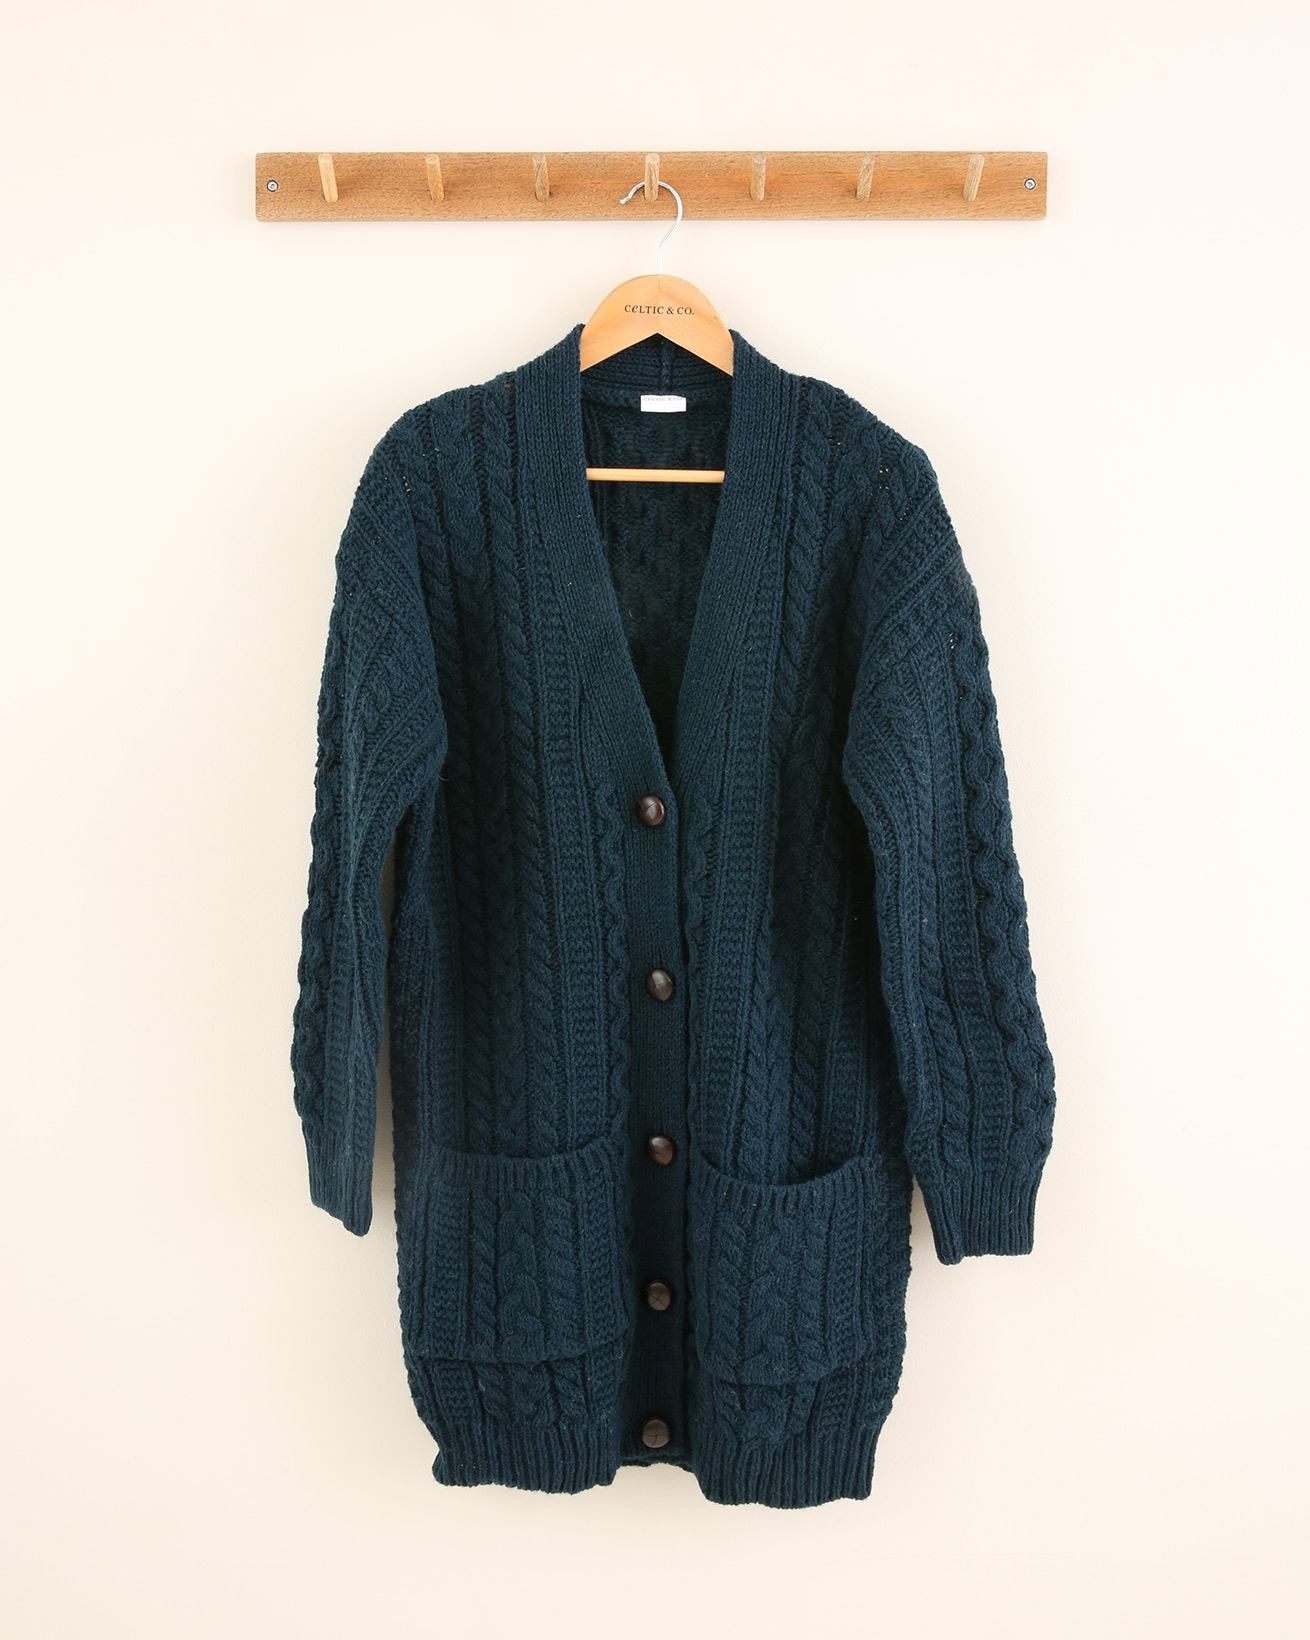 Cable Boyfriend Cardigan - Size Small - Icelandic Blue - 1651